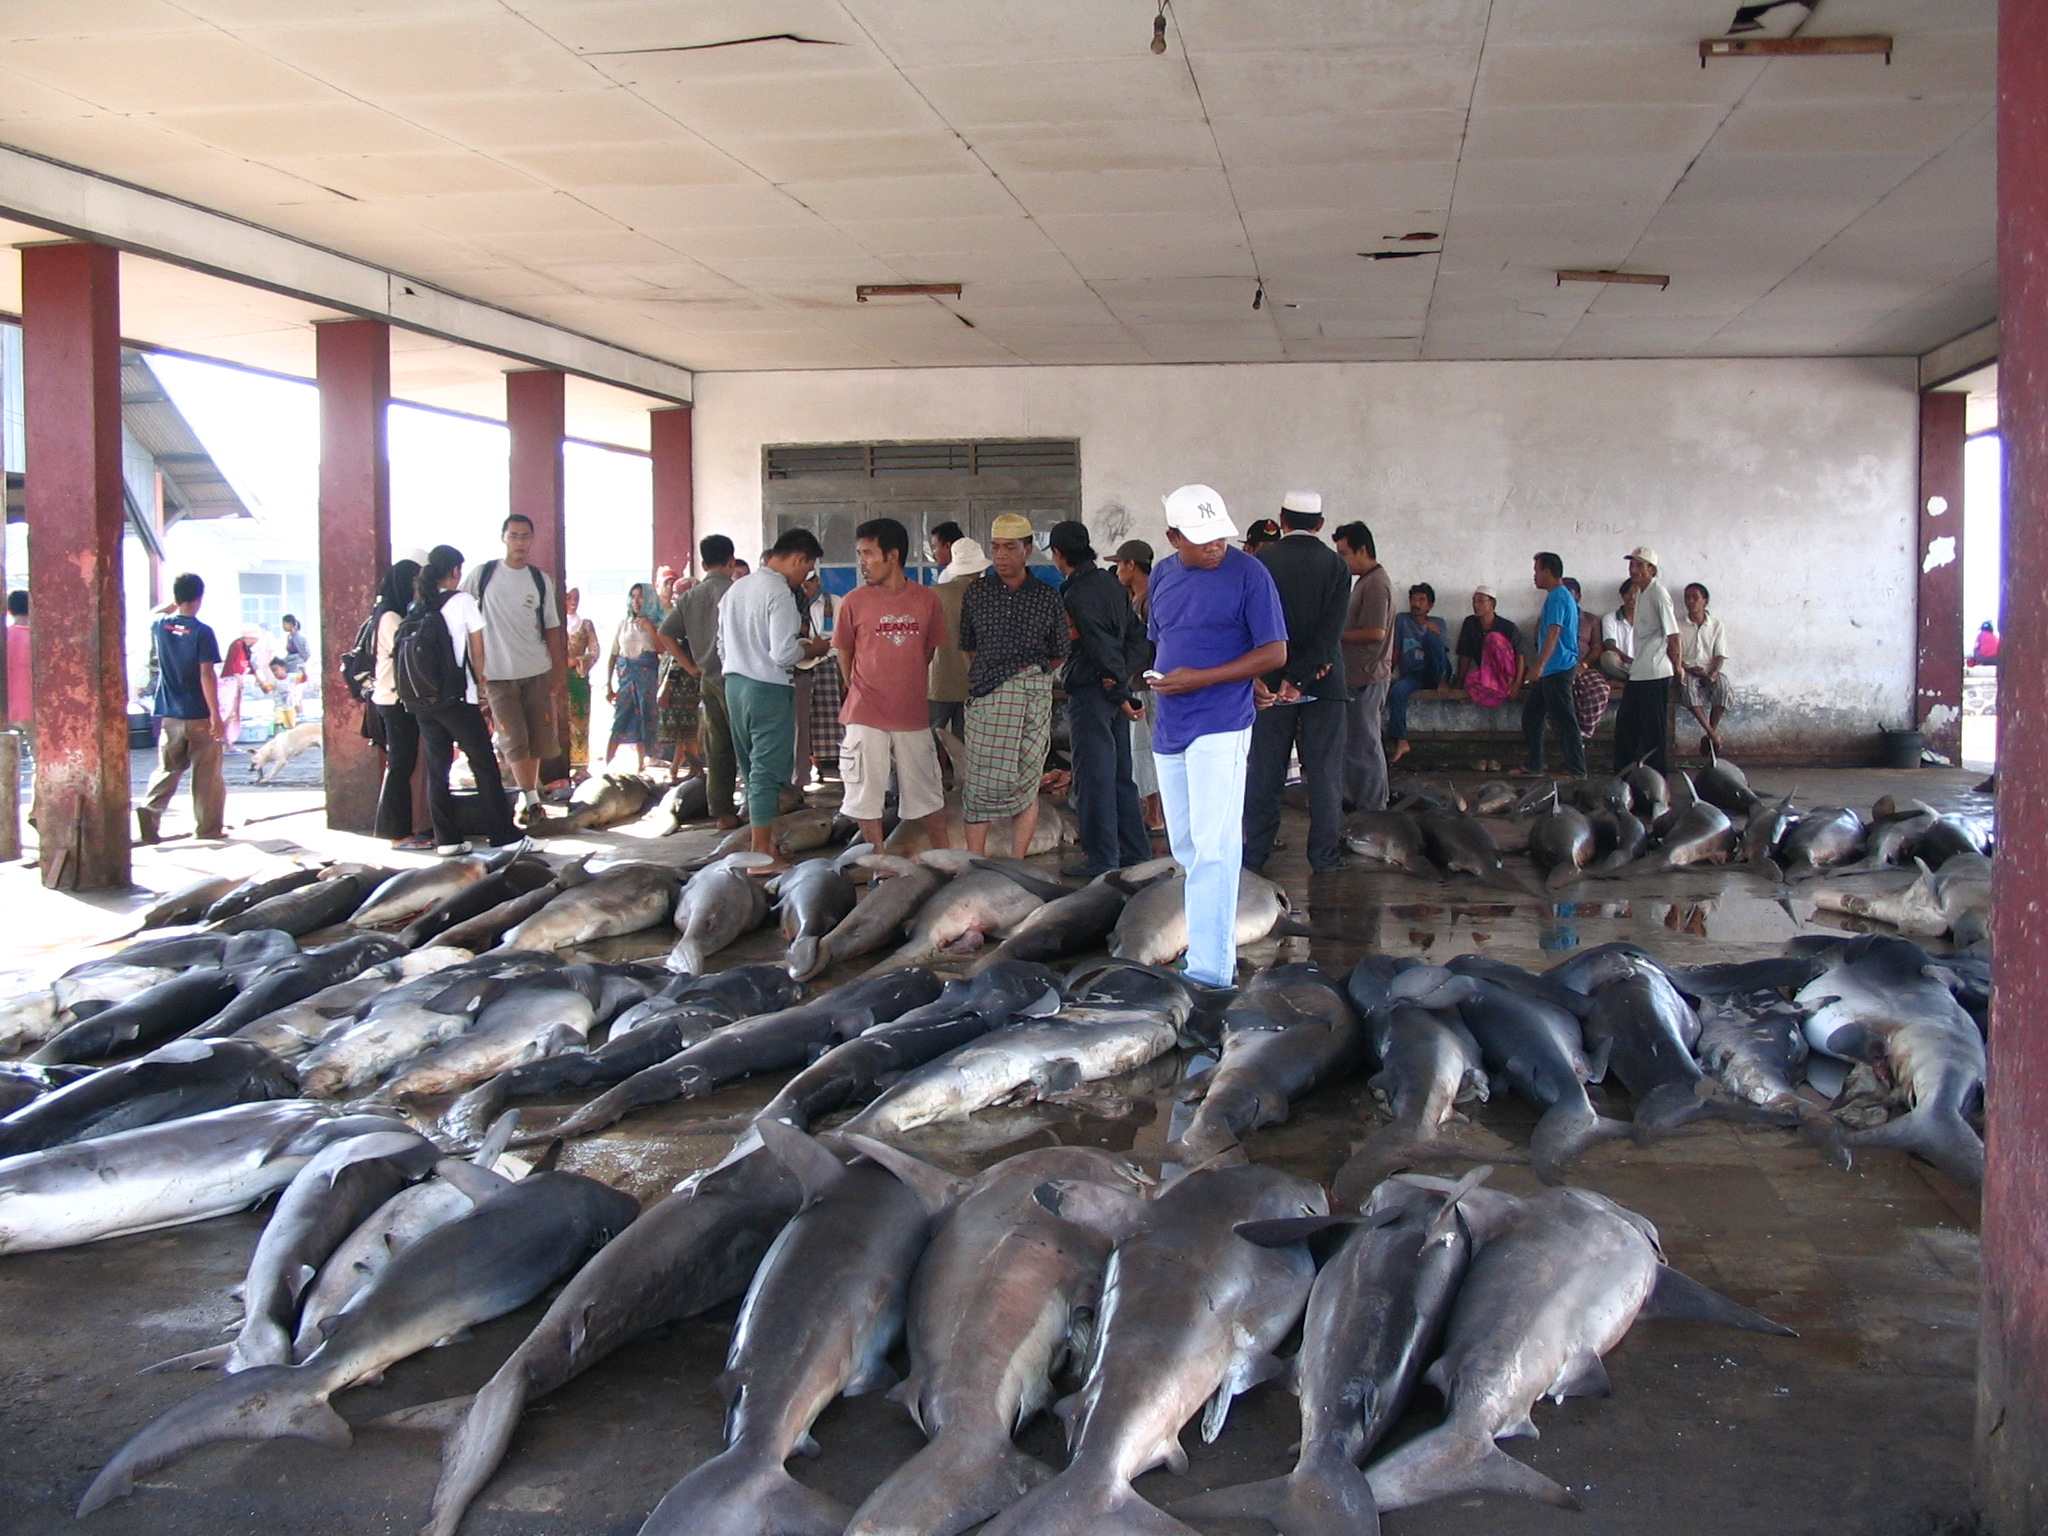 shark market, Indonesia